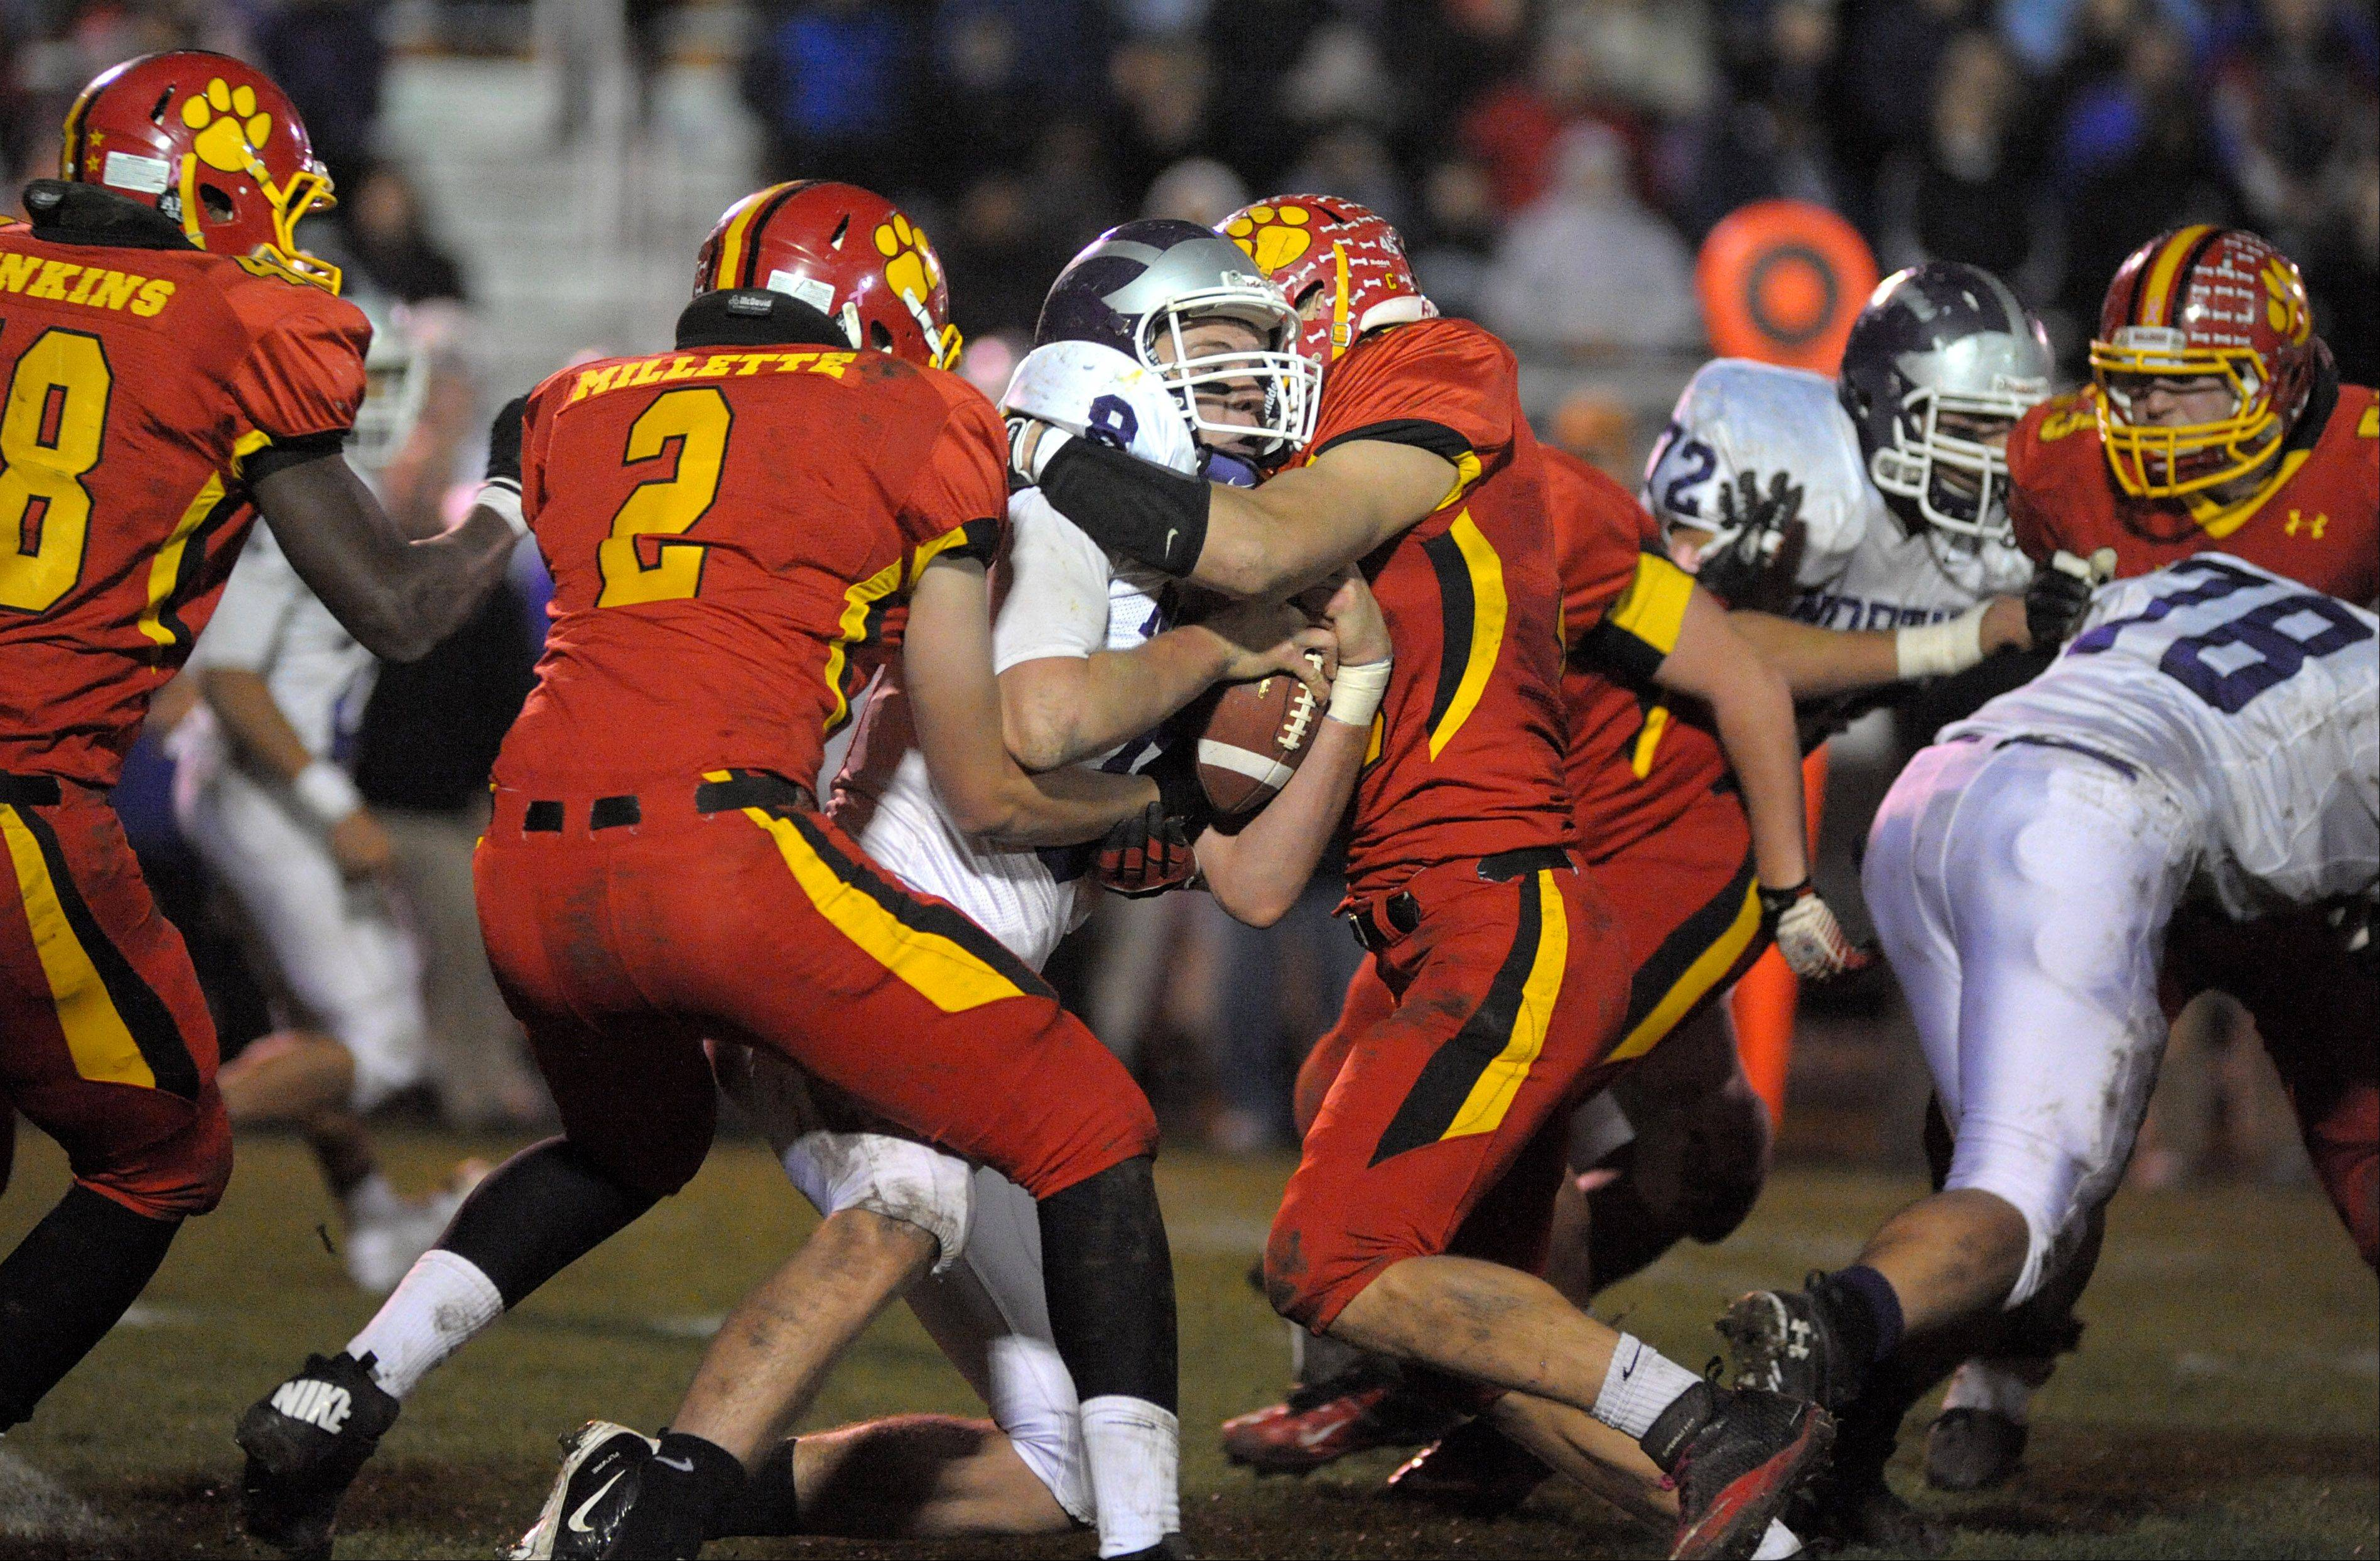 Downers Grove North quarterback David Edwards is sacked by Batavia's James Millette and Cullin Rokos in the fourth quarter of playoff game on Friday, October 26.